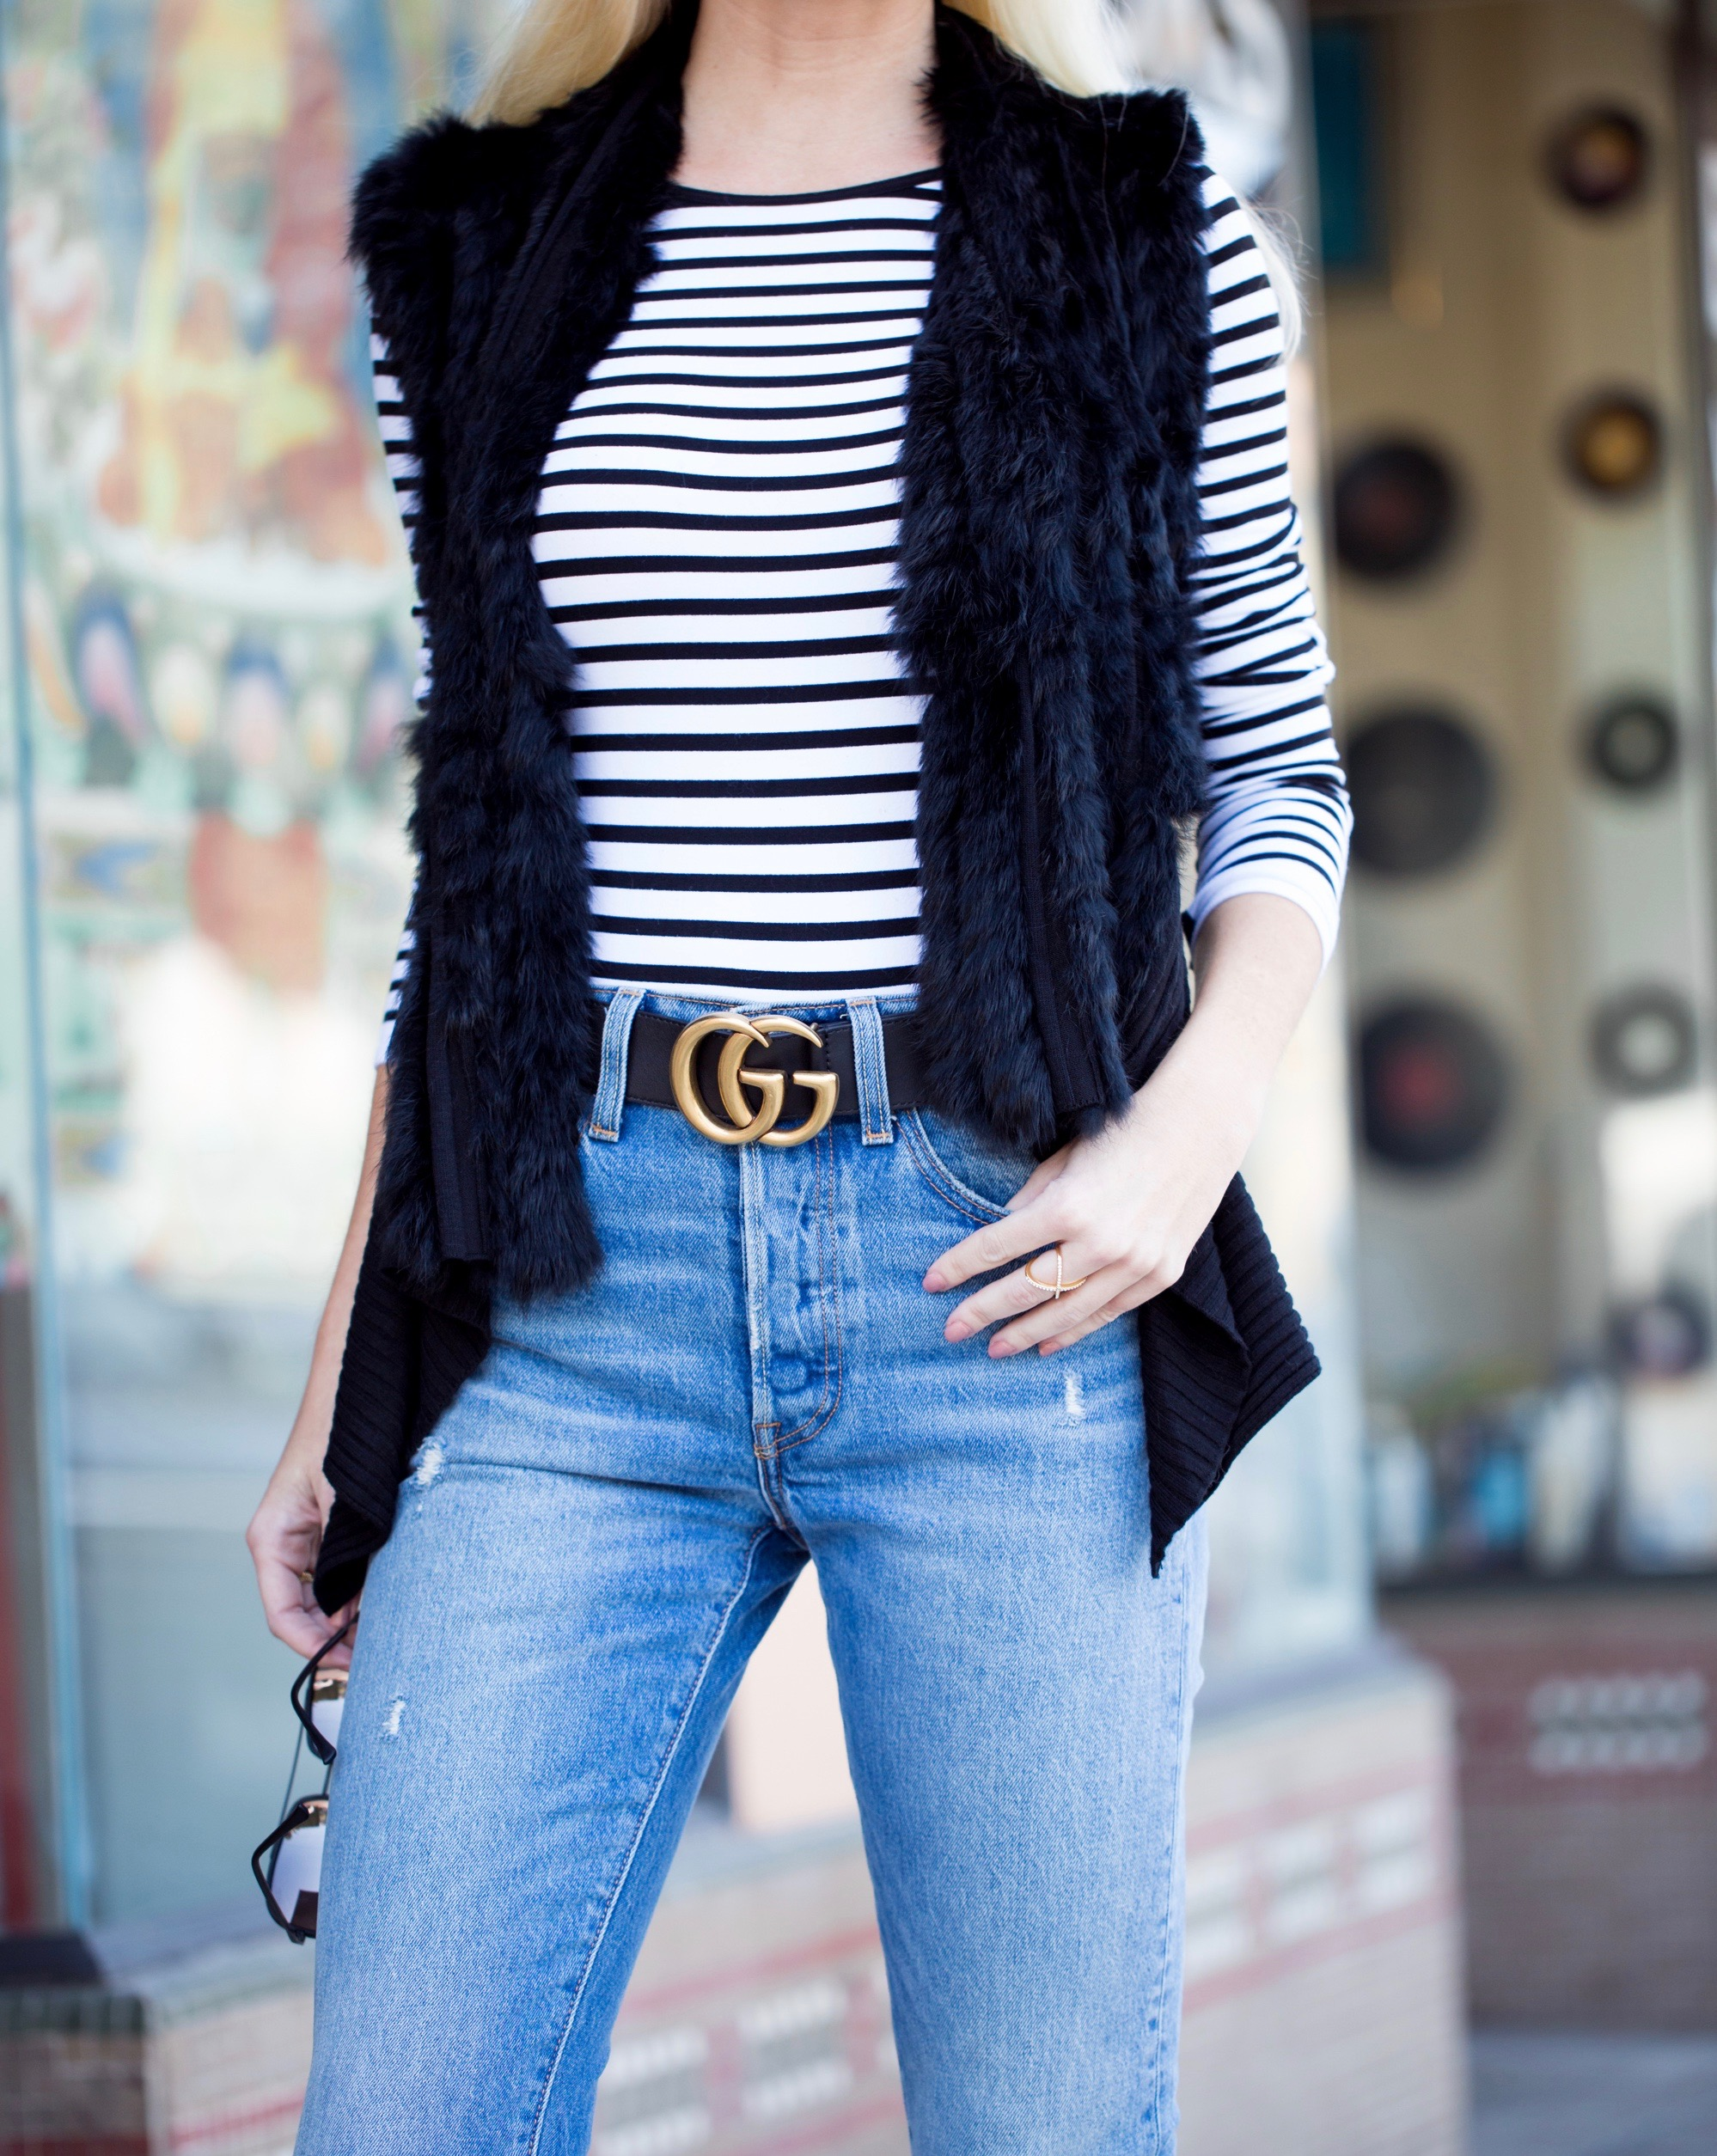 Fur Vests, Stripes and Booties | Midwest to the Best